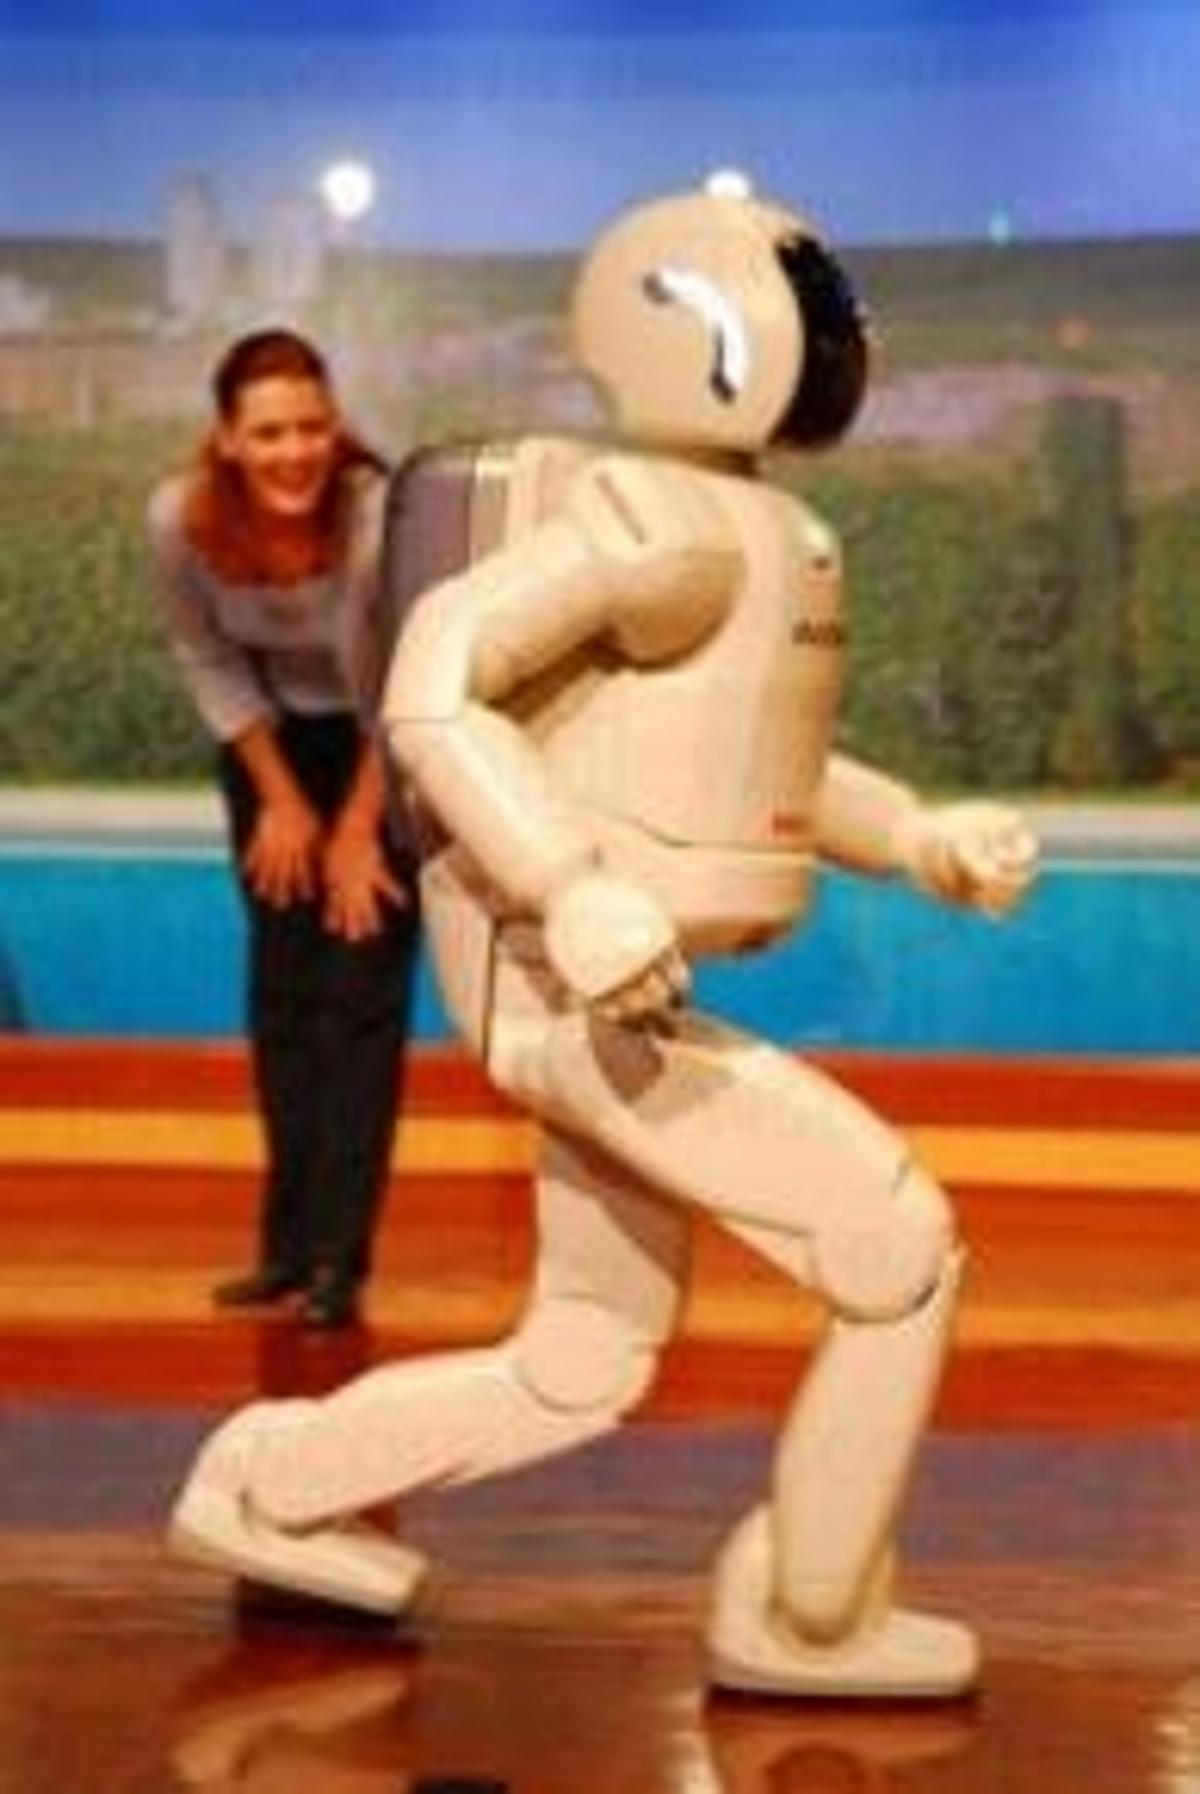 ASIMO on stage at Disneyland